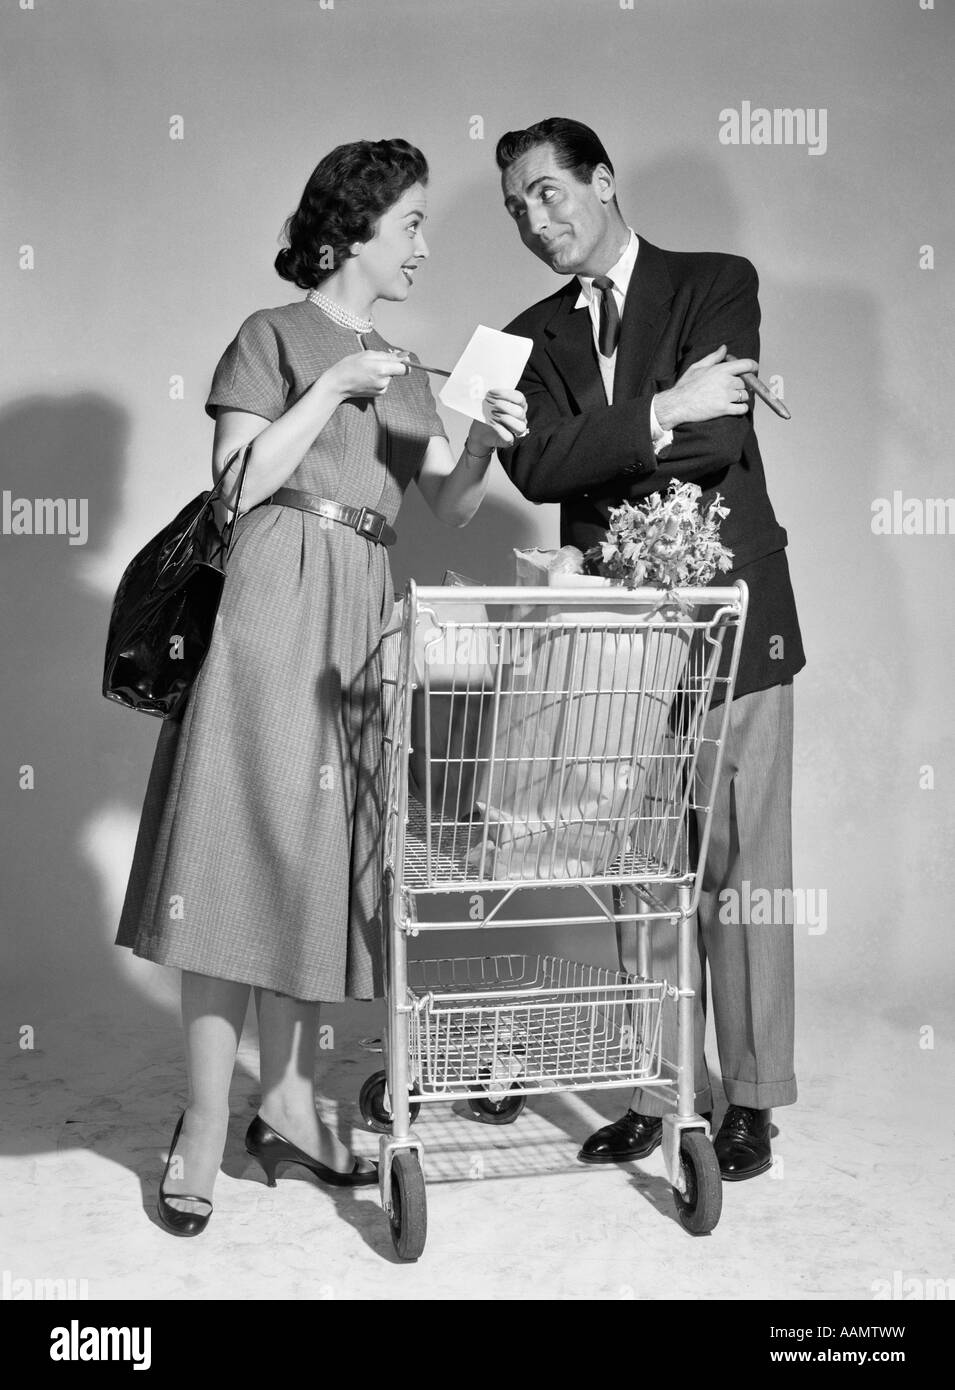 grocery shopping 1950s stock photos amp grocery shopping